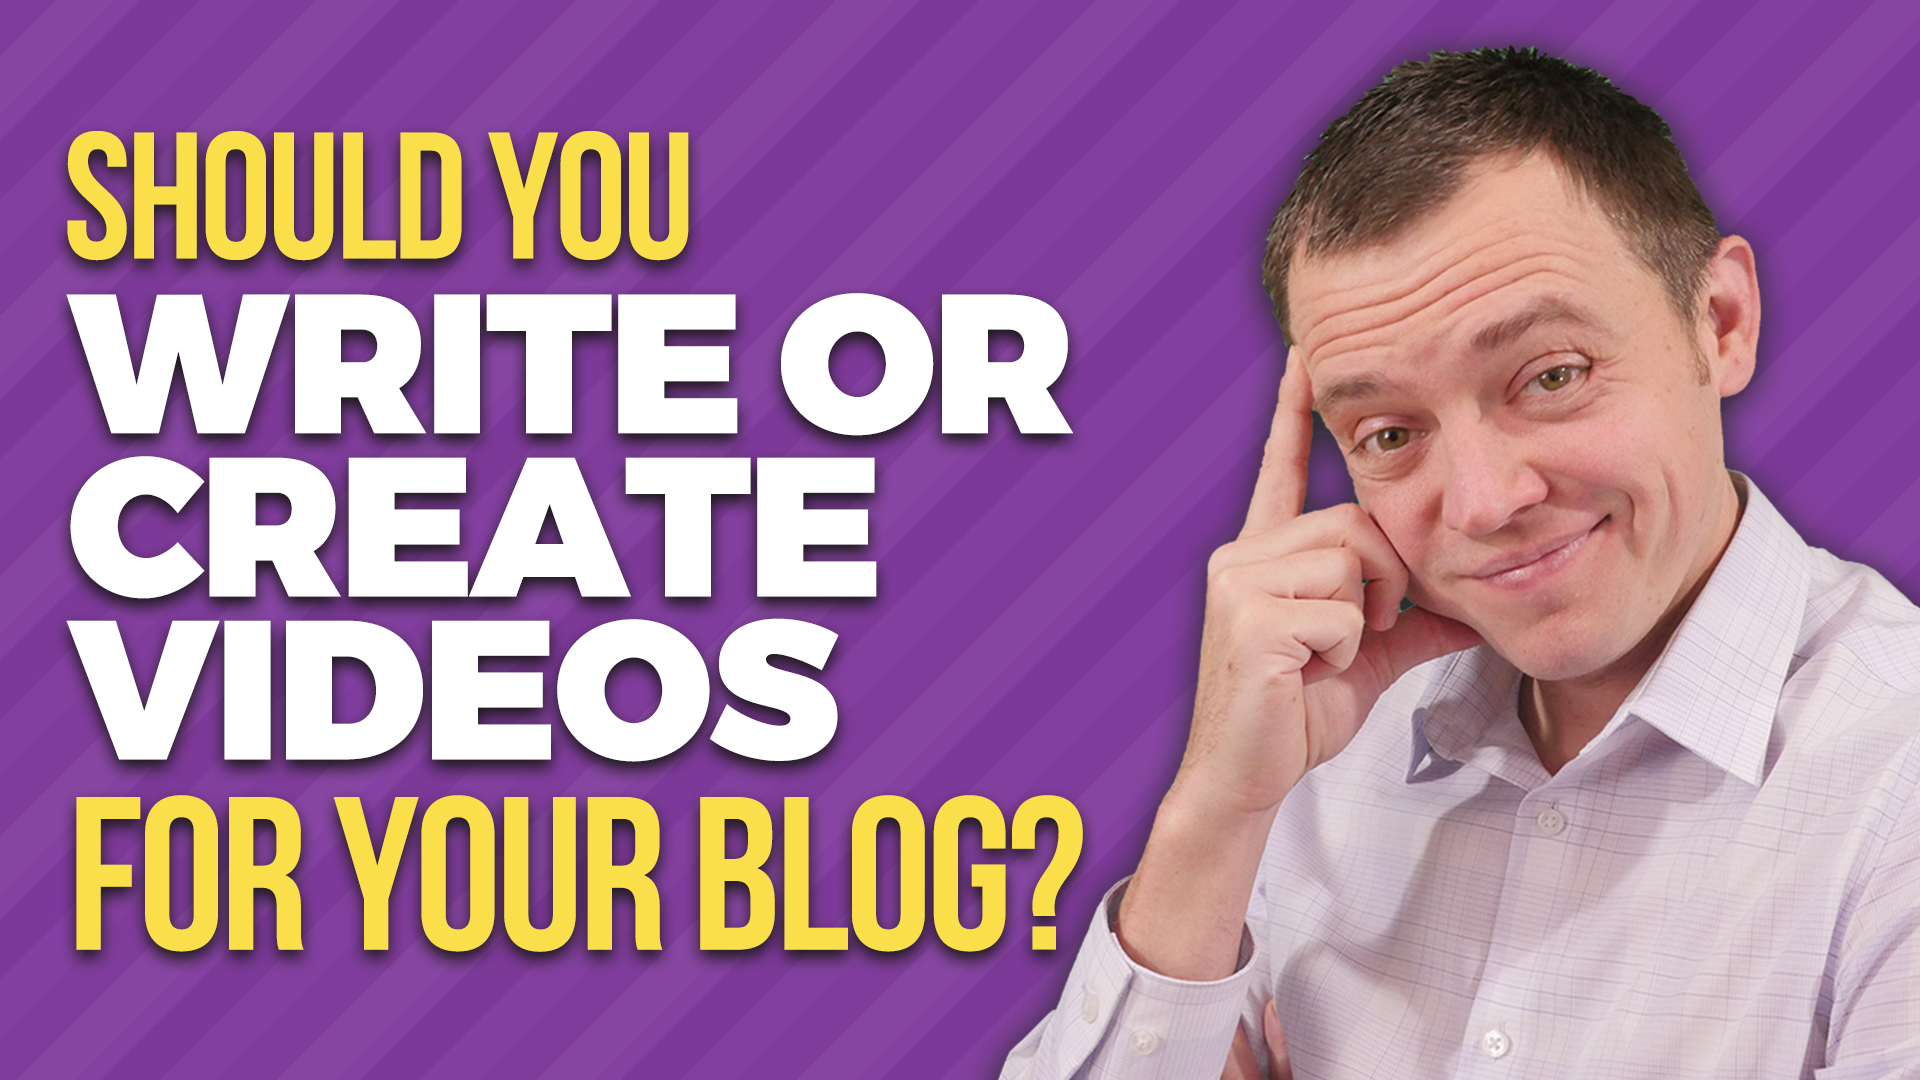 Write for Your Blog or Create Videos Instead